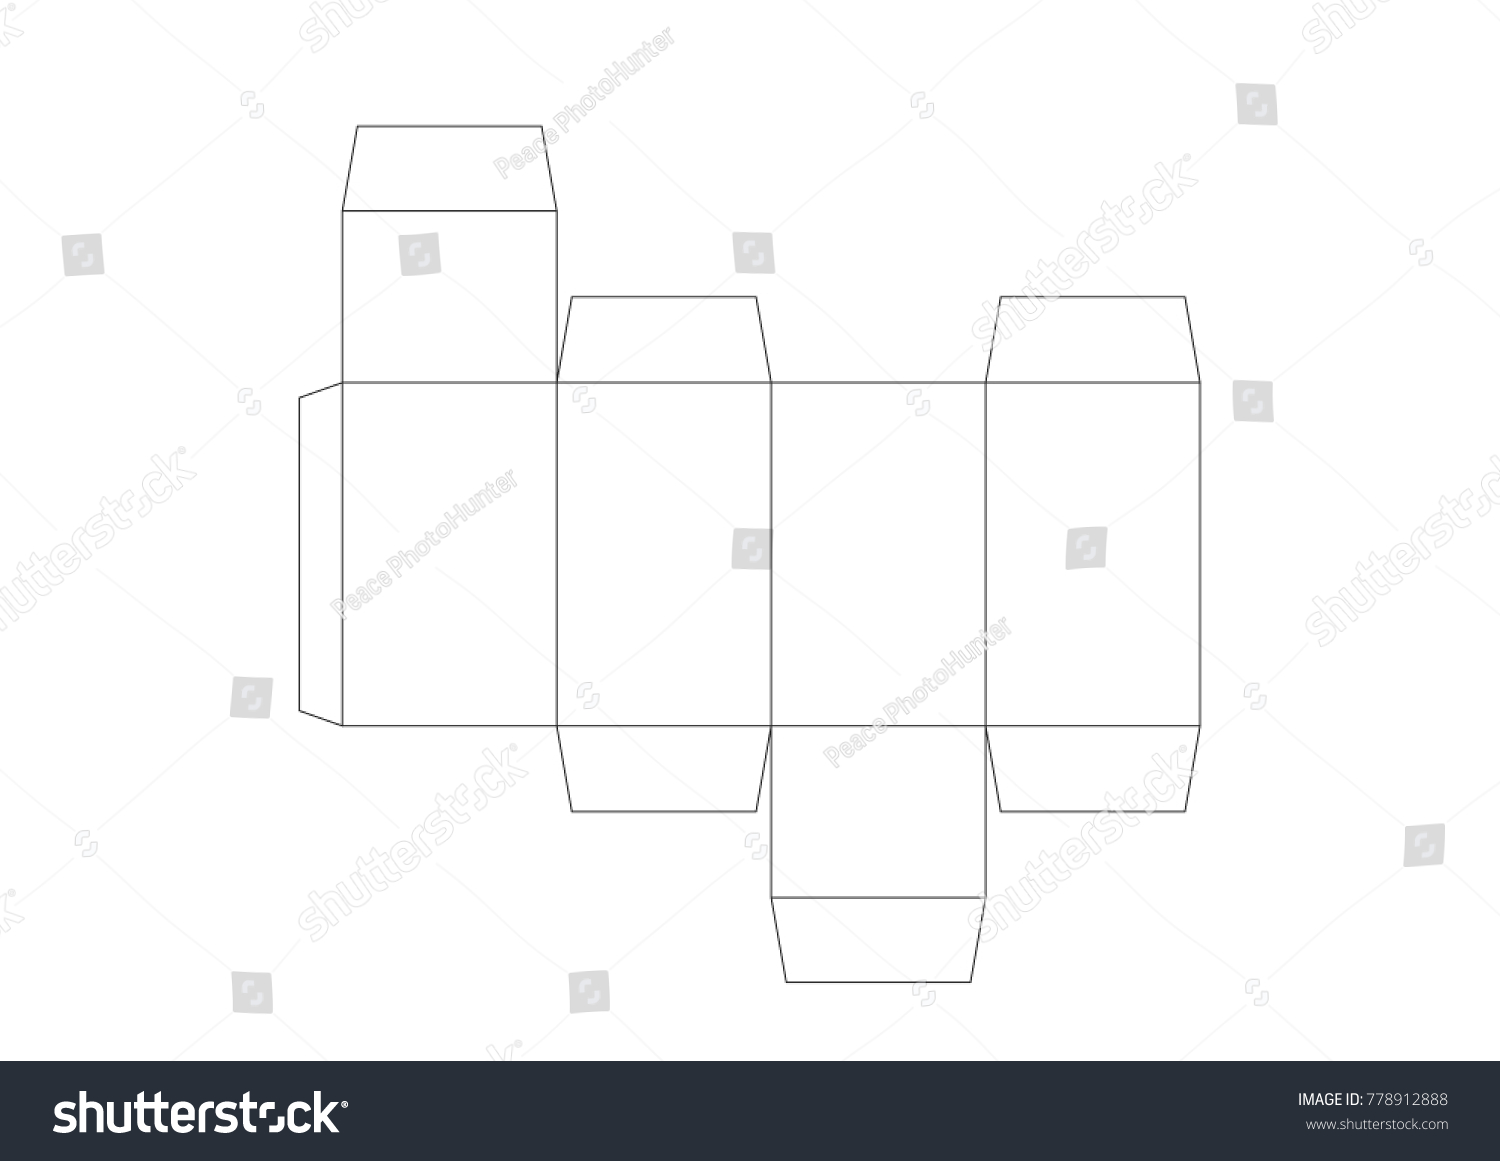 image.shutterstock.com/z/stock-vector-packaging-bo...